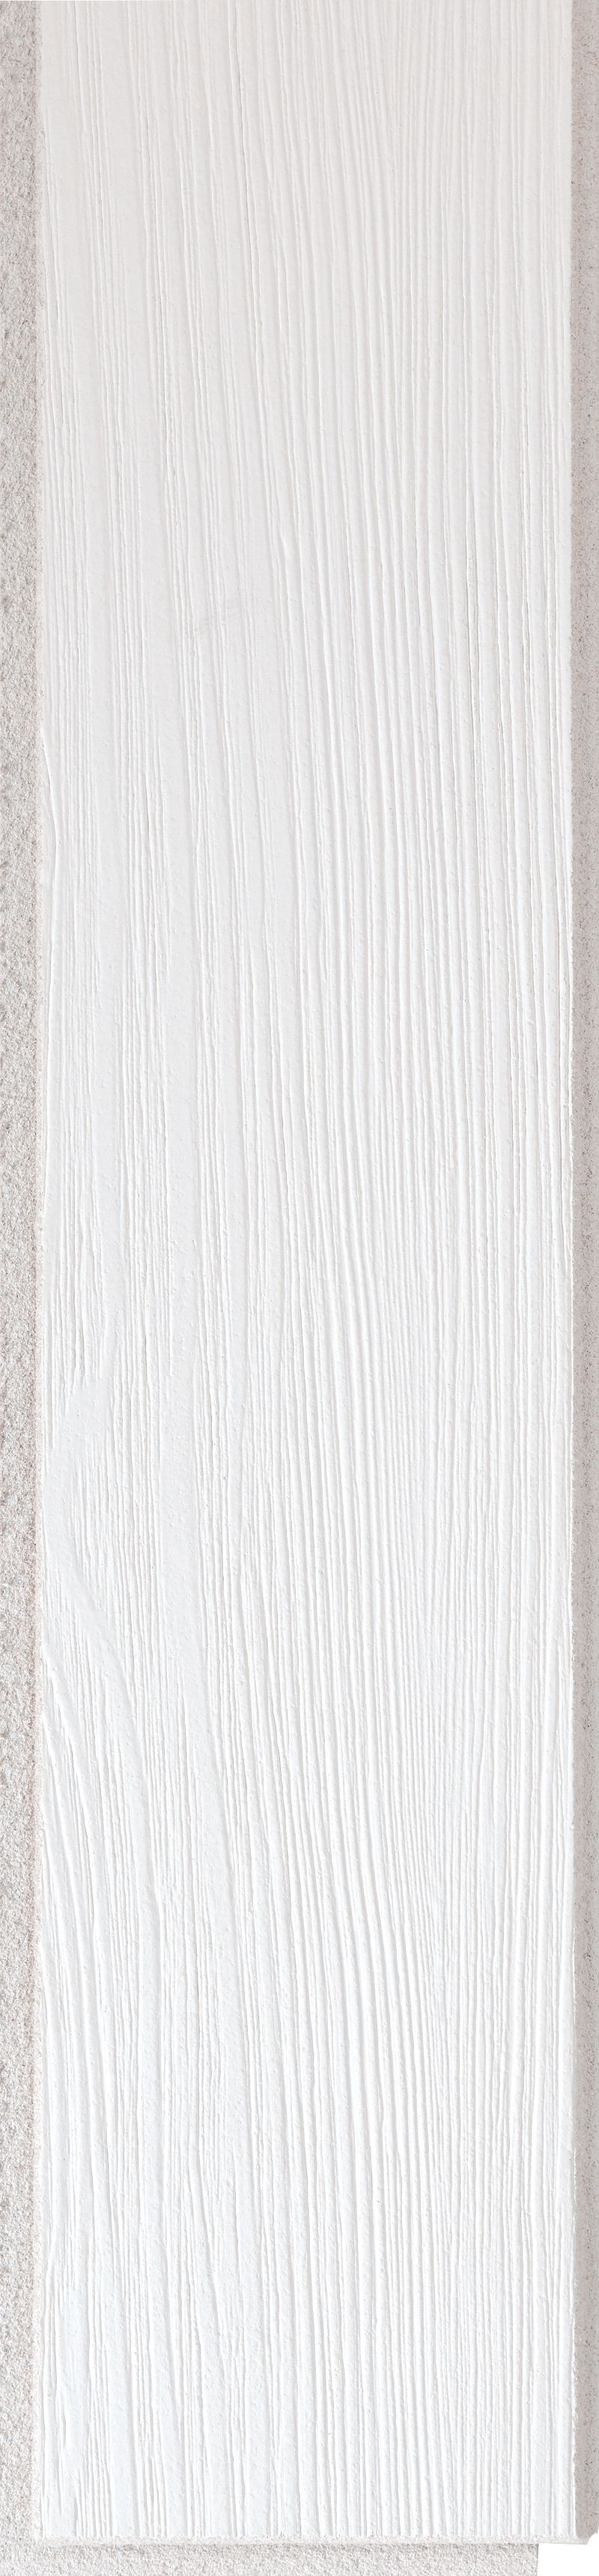 Cover Popcorn Ceilings Armstrong Residential Old Style 3 Way Switch Wiring Country Classic Plank White 6